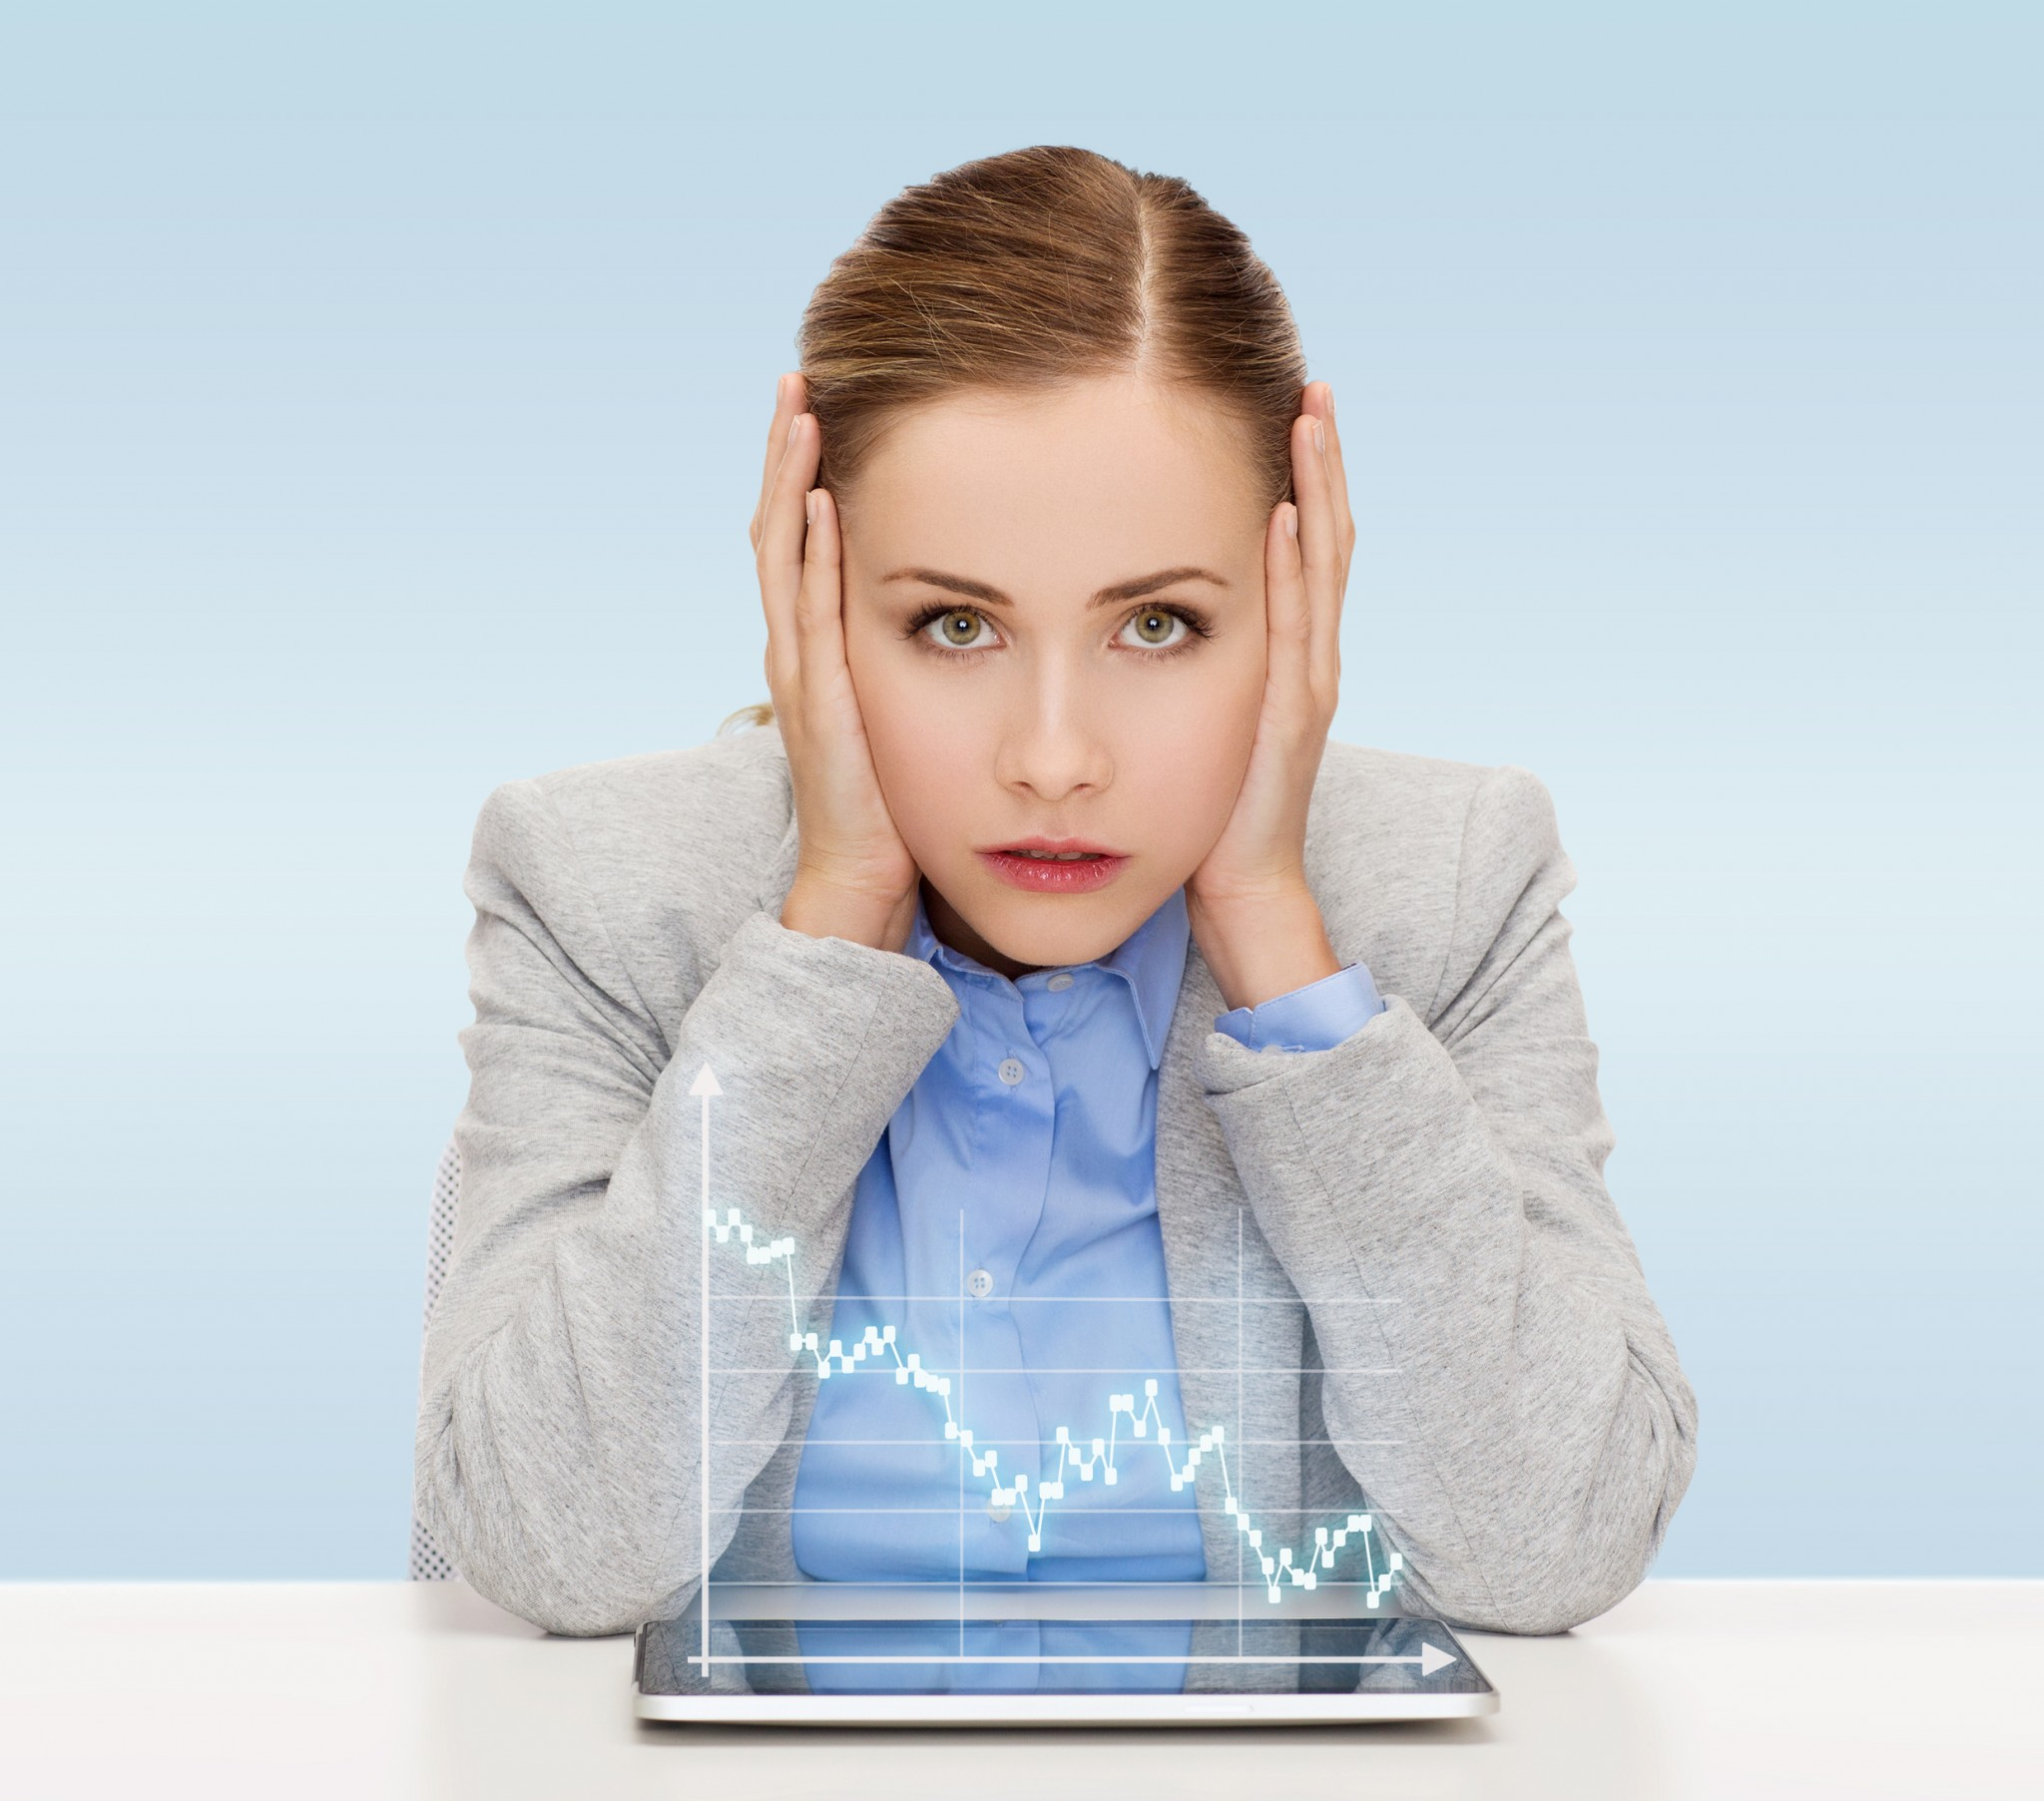 business, technology, internet and office concept - businesswoman with tablet pc computer and forex graph over blue background